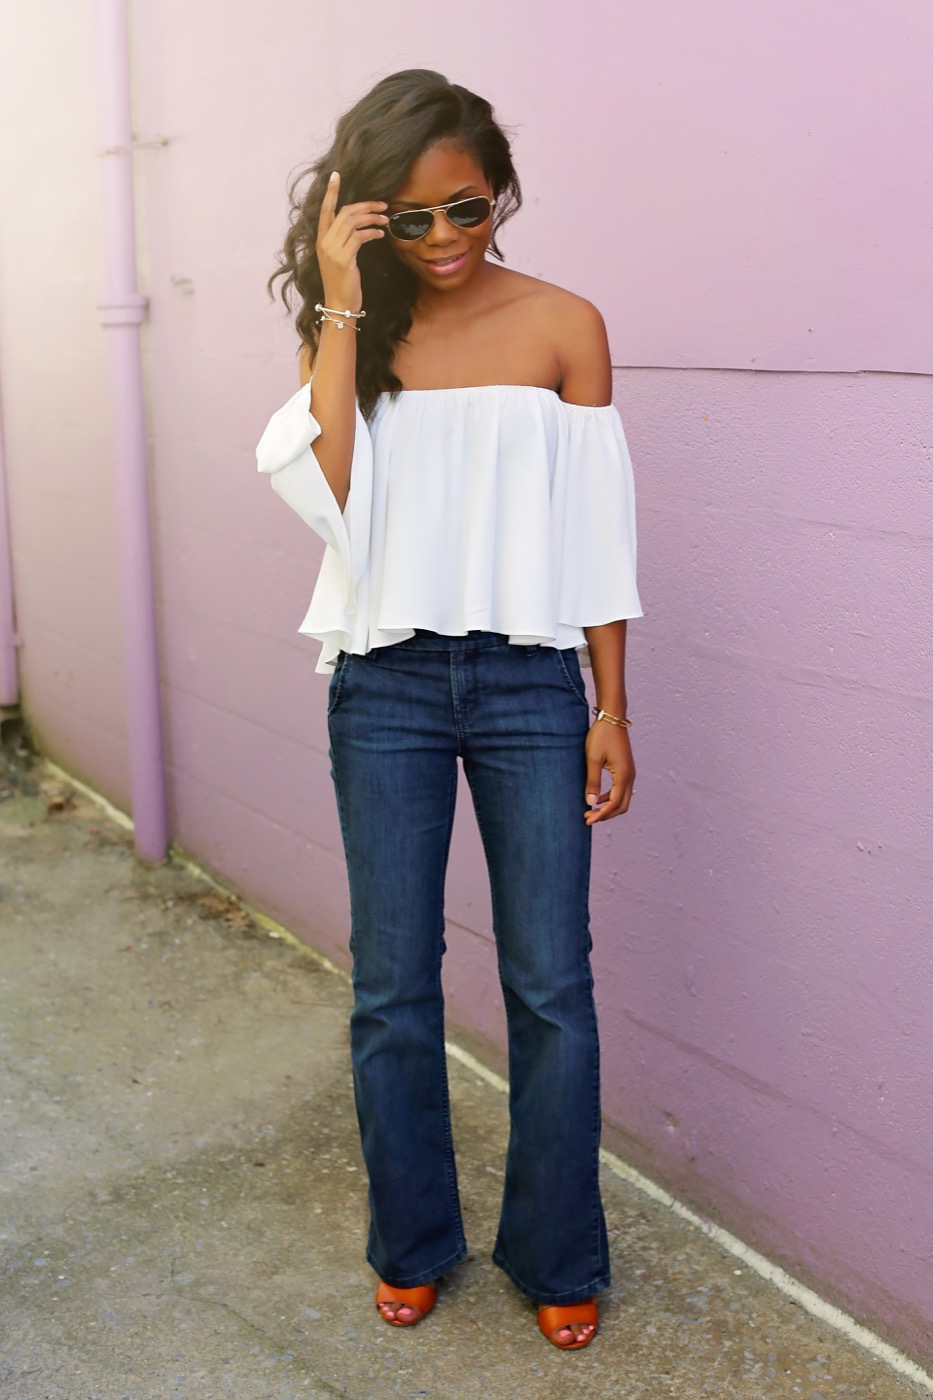 ily couture off the shoulder top